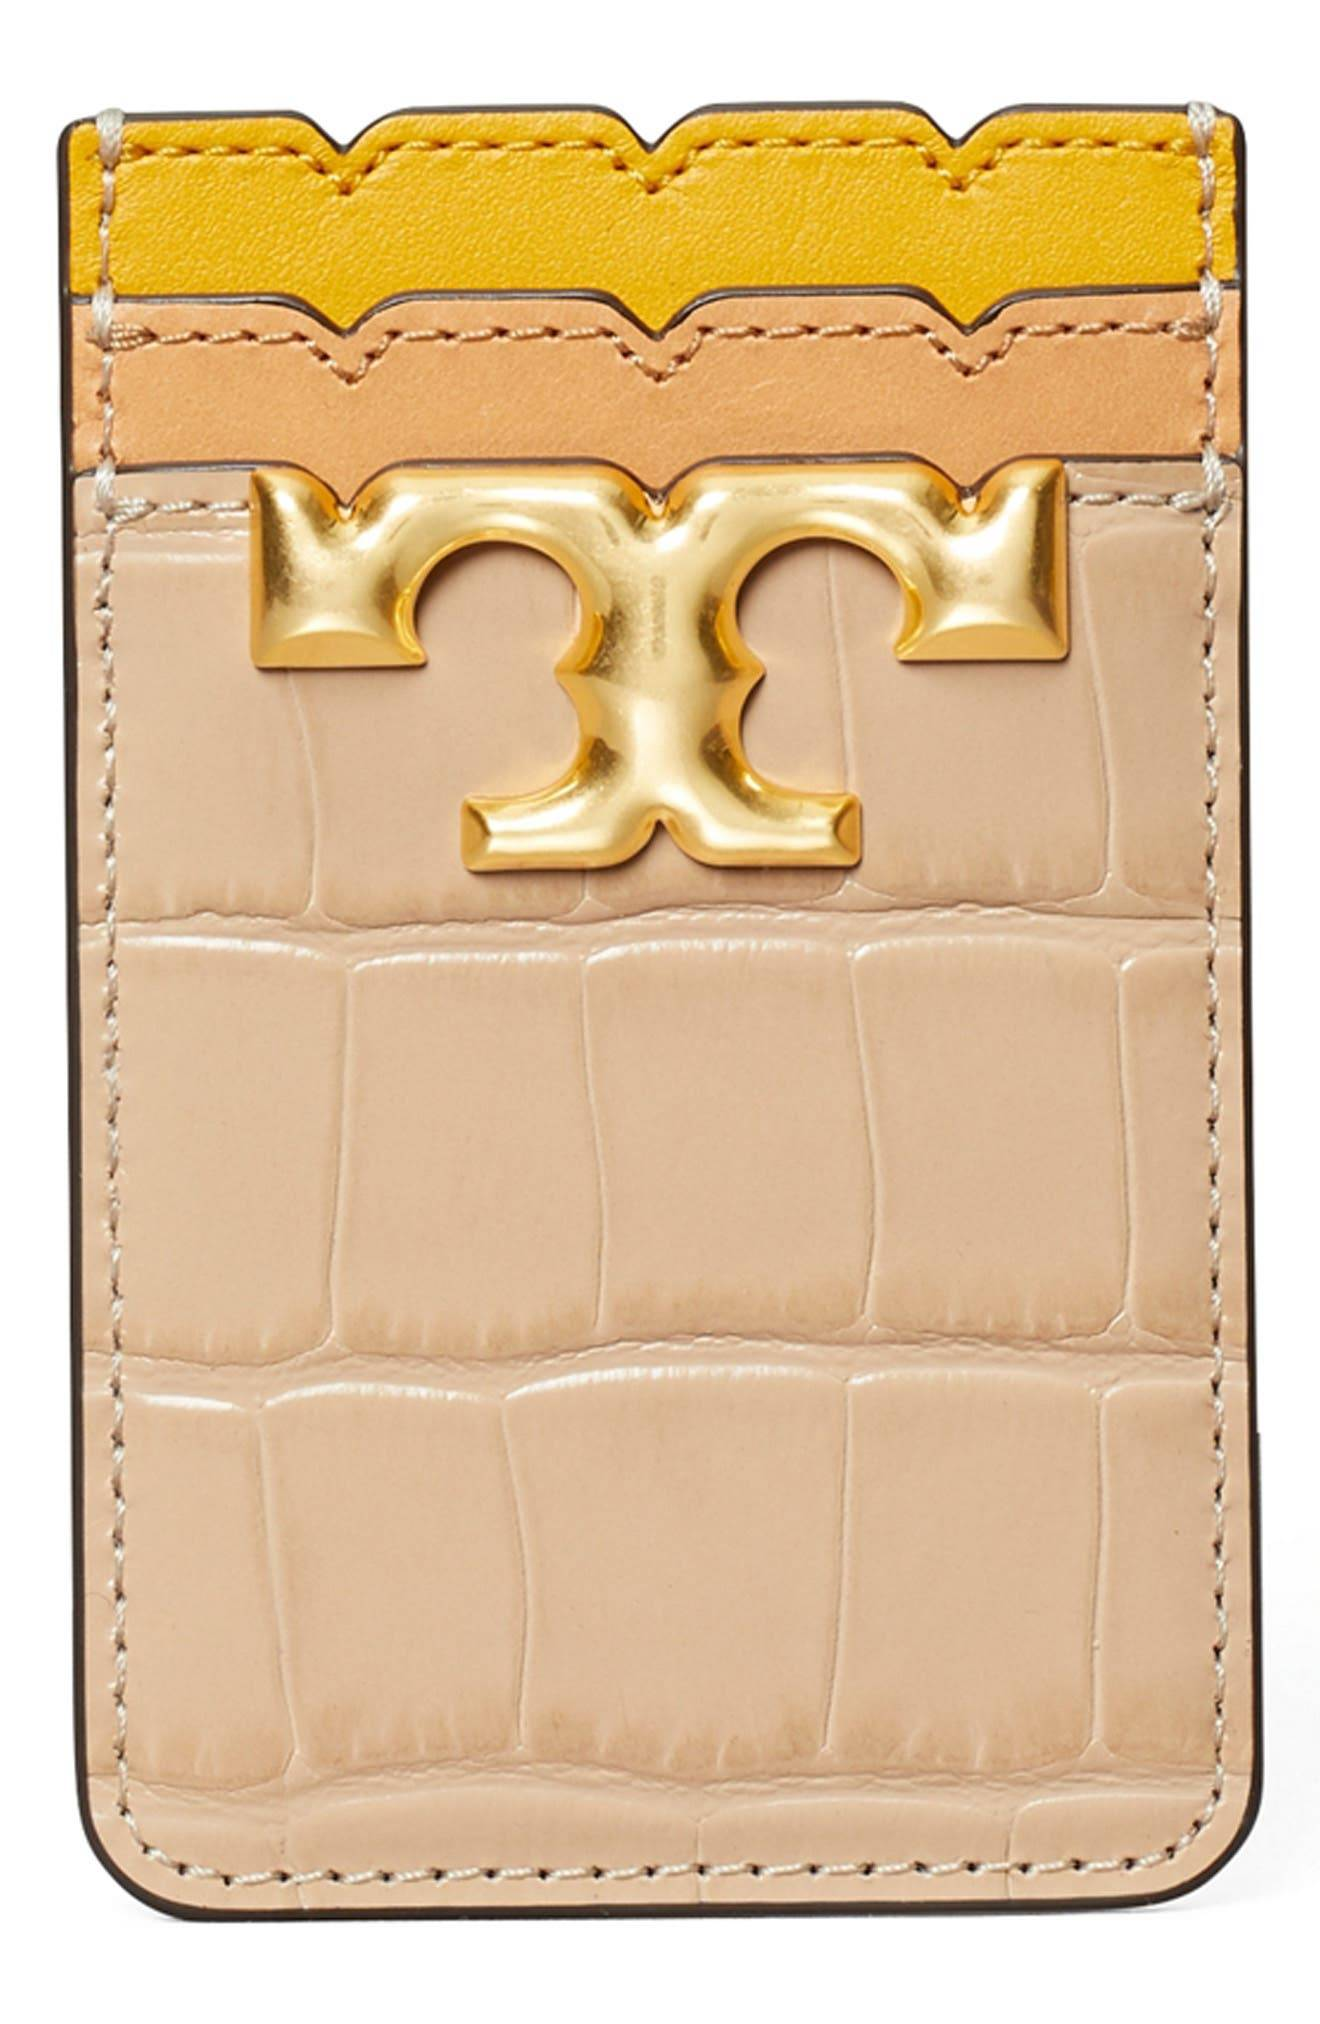 Tory Burch Tory Buch Eleanor Embossed Leather Phone Pocket - Beige